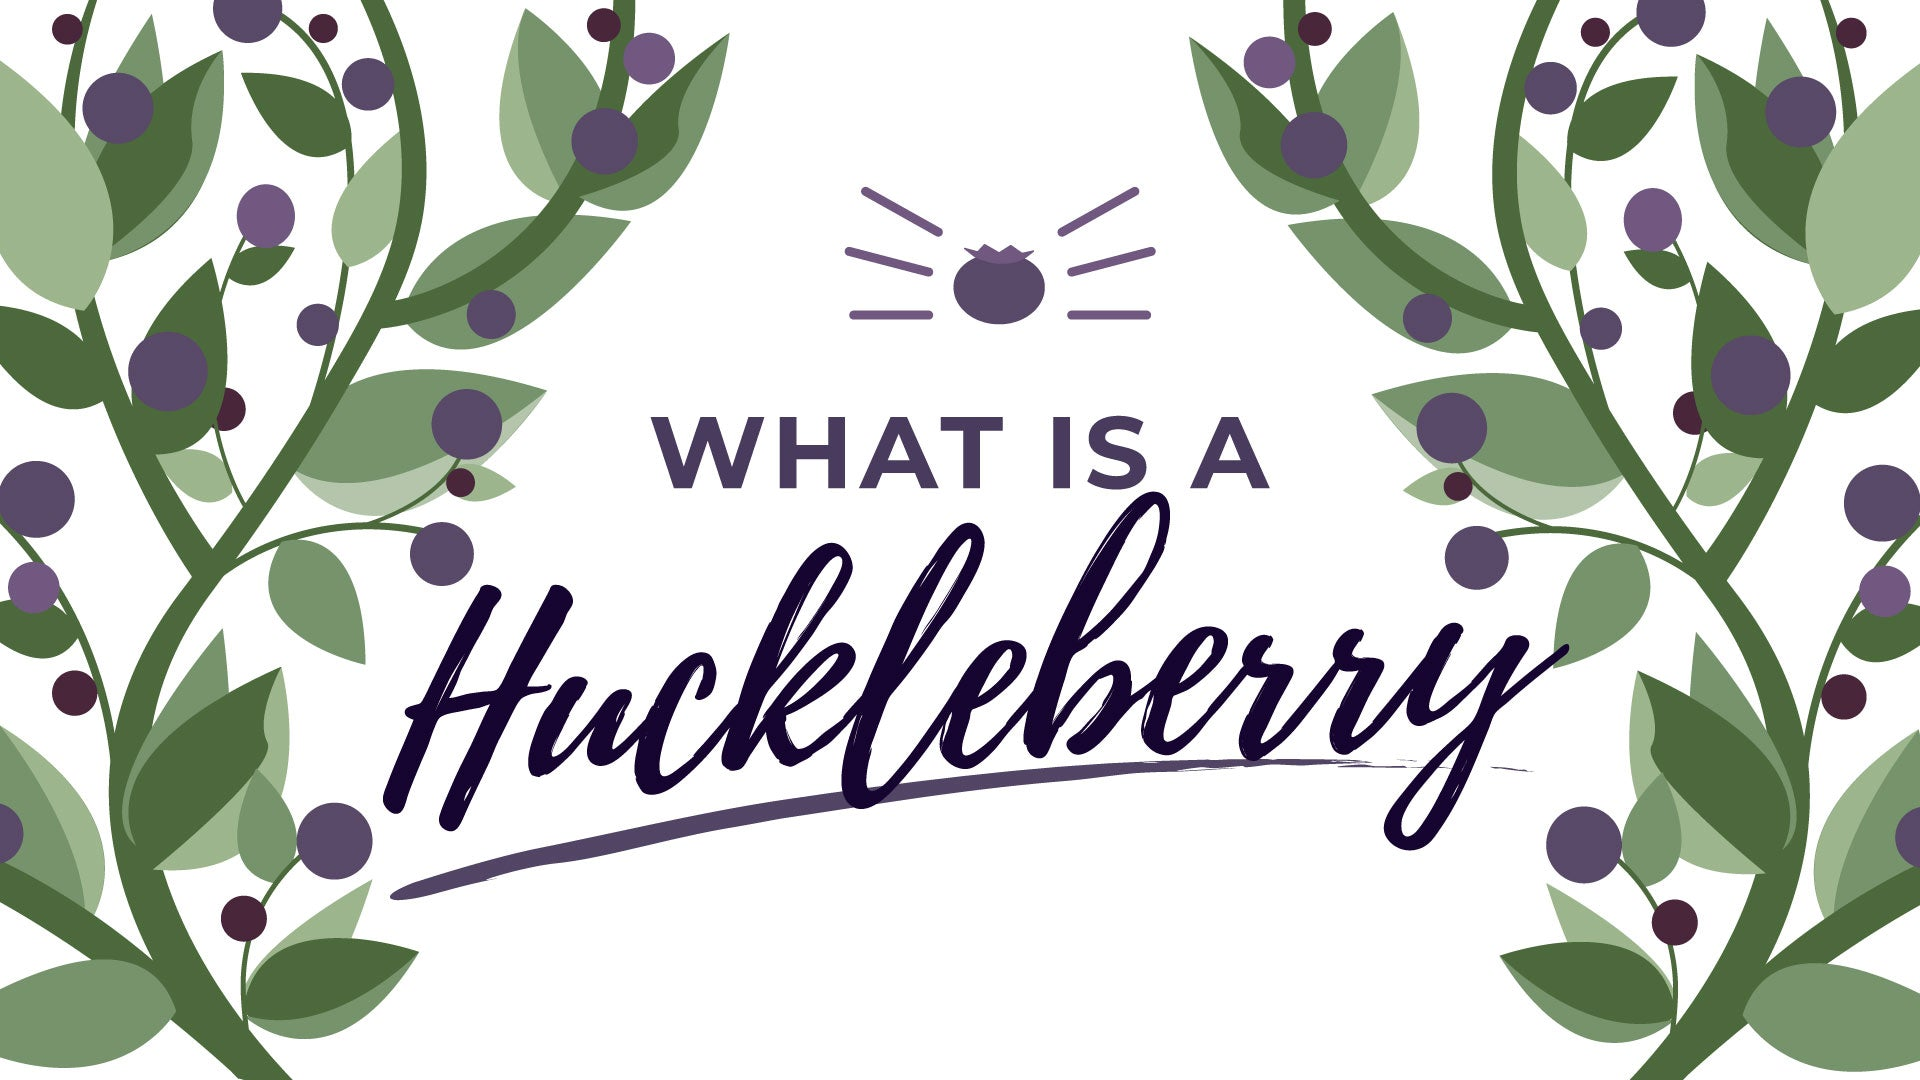 What is a Huckleberry? And other FAQ from Montana Gift Corral, the #1 seller of Huckleberry Gifts